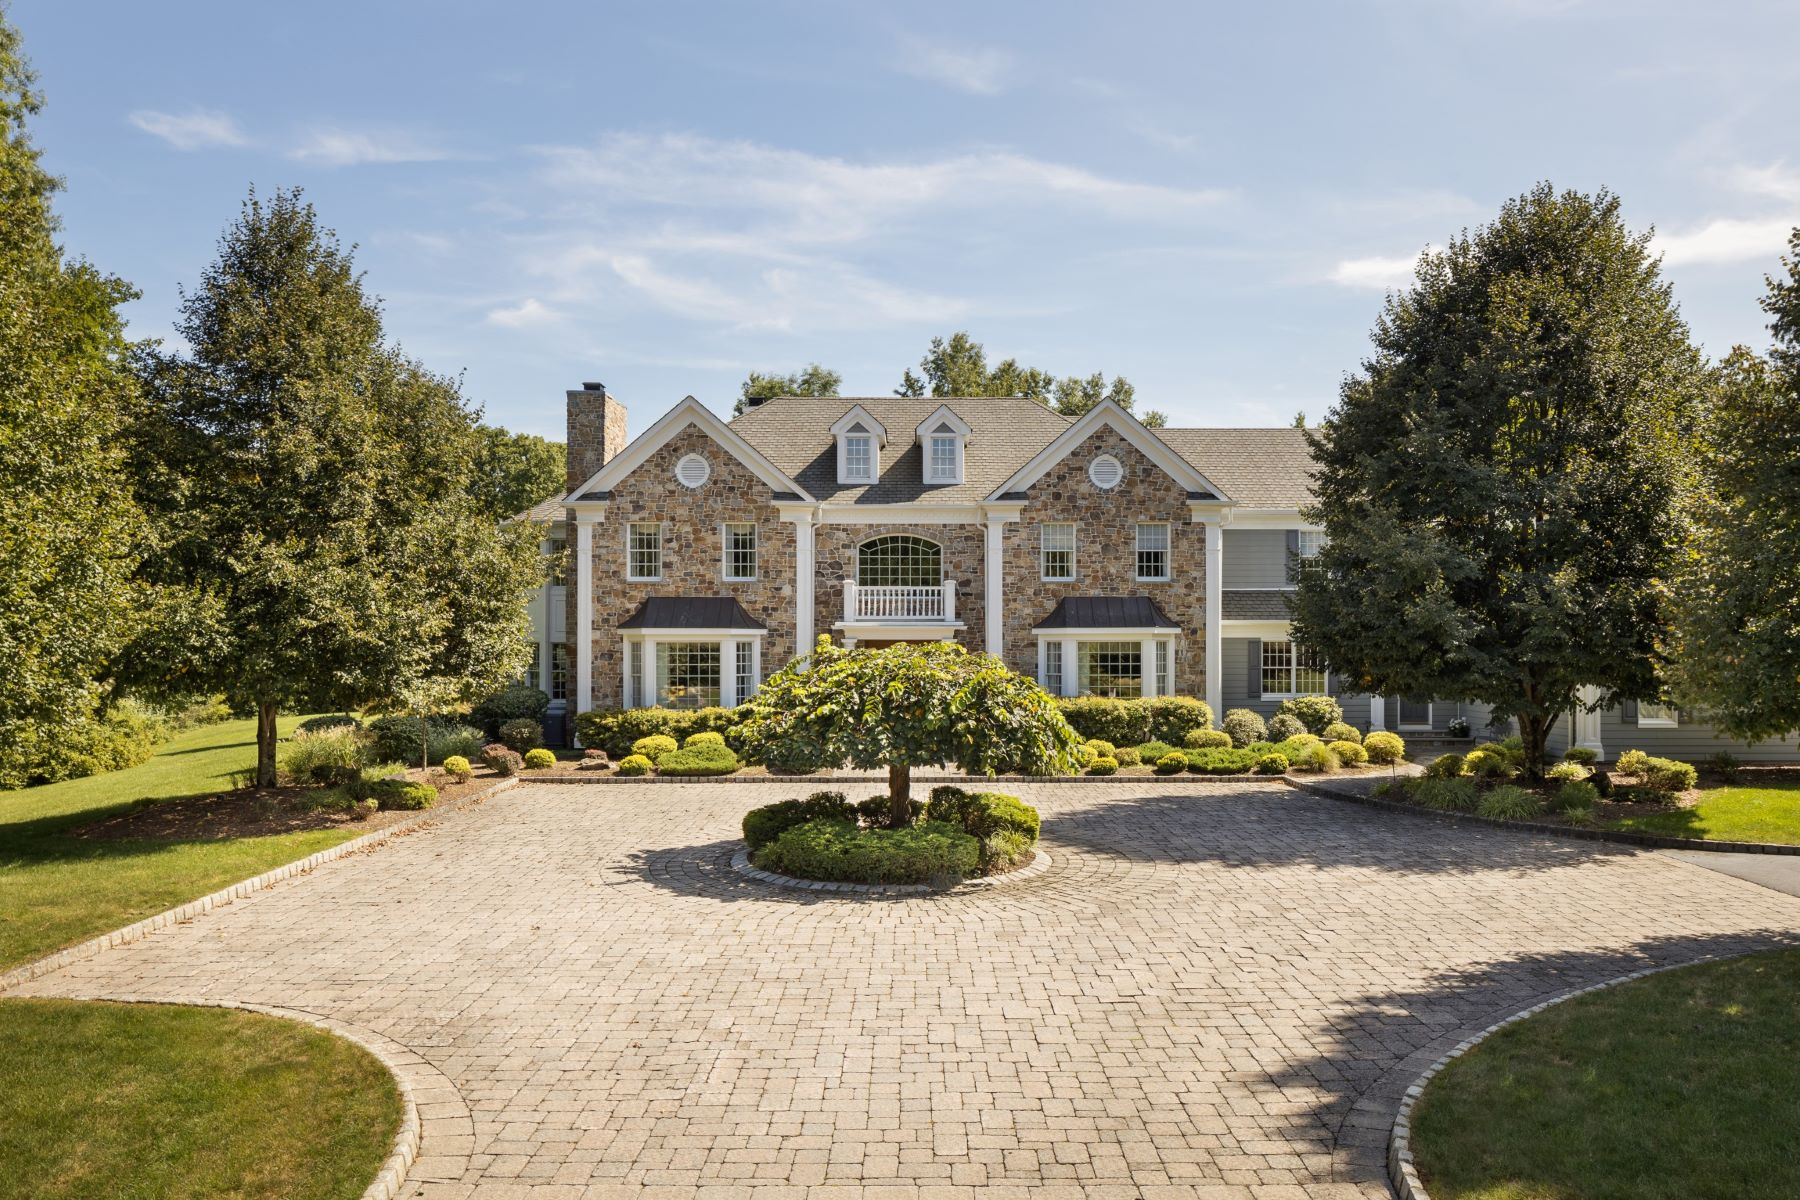 Single Family Homes for Sale at Exceptional Custom Residence 17 Beaver Creek Court Basking Ridge, New Jersey 07920 United States